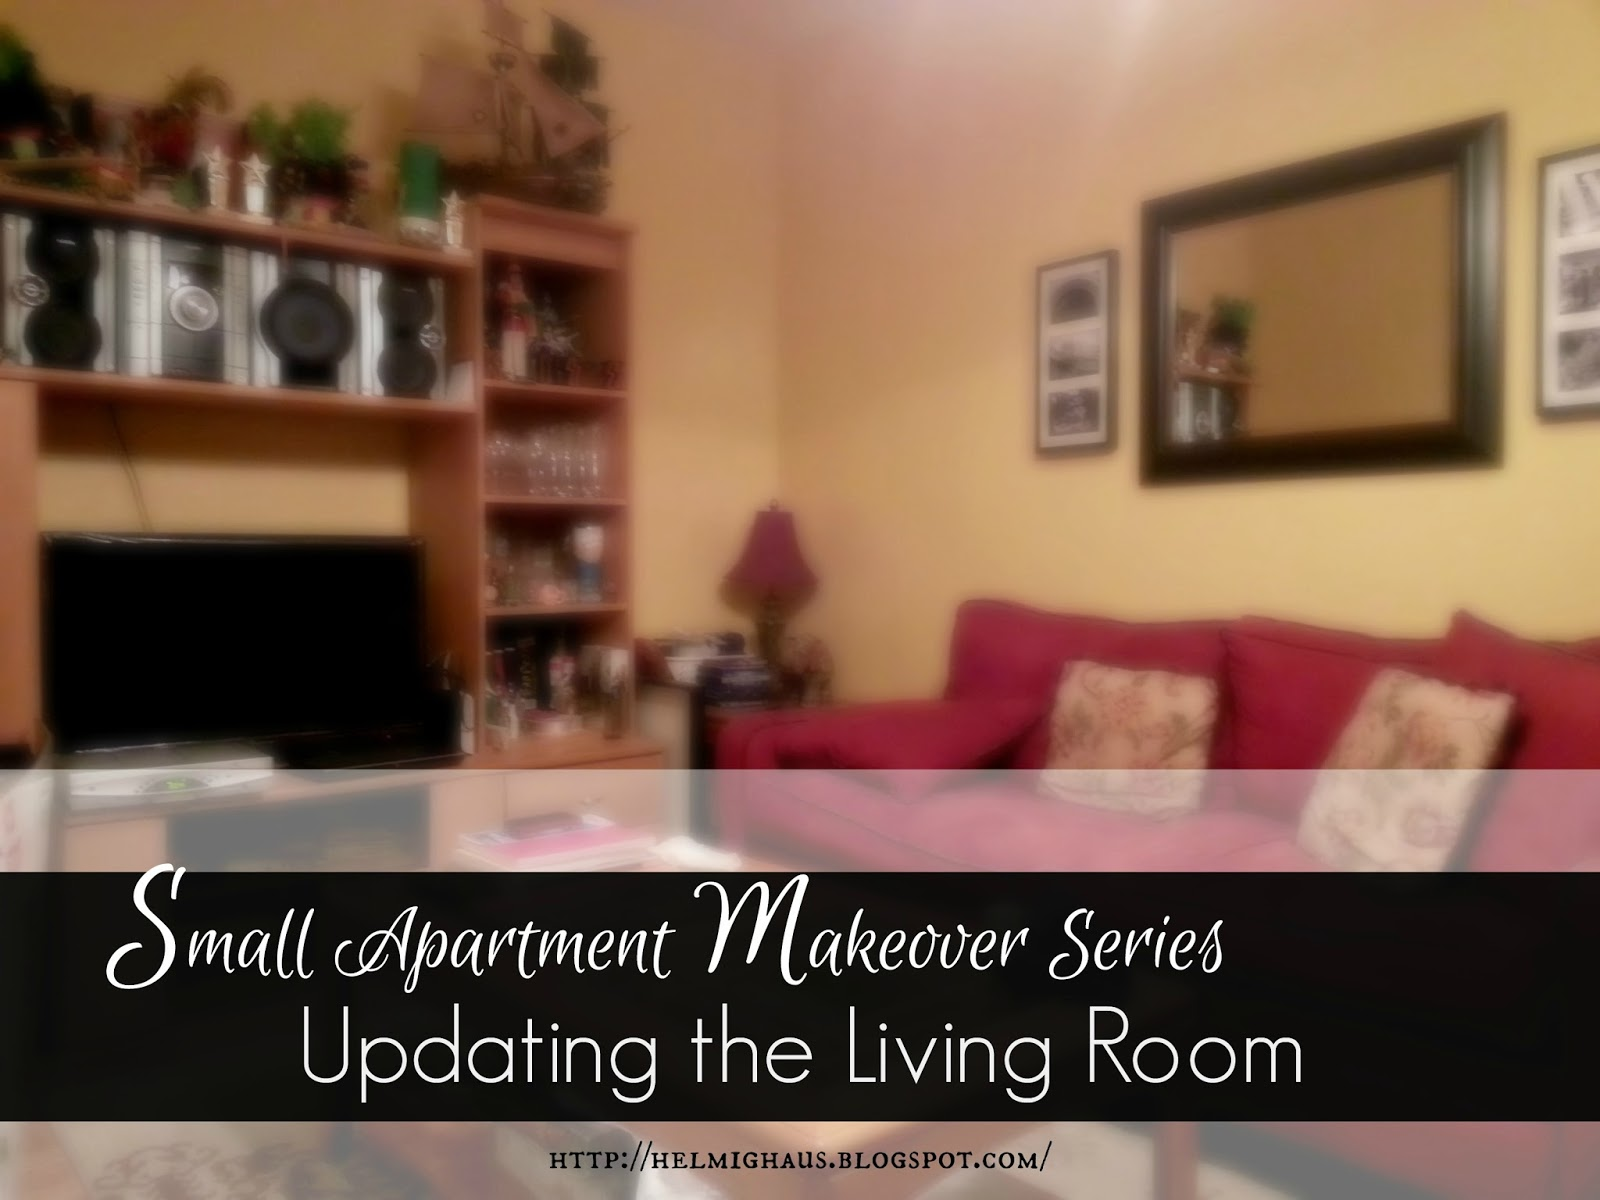 Small Apartment Makeover Series